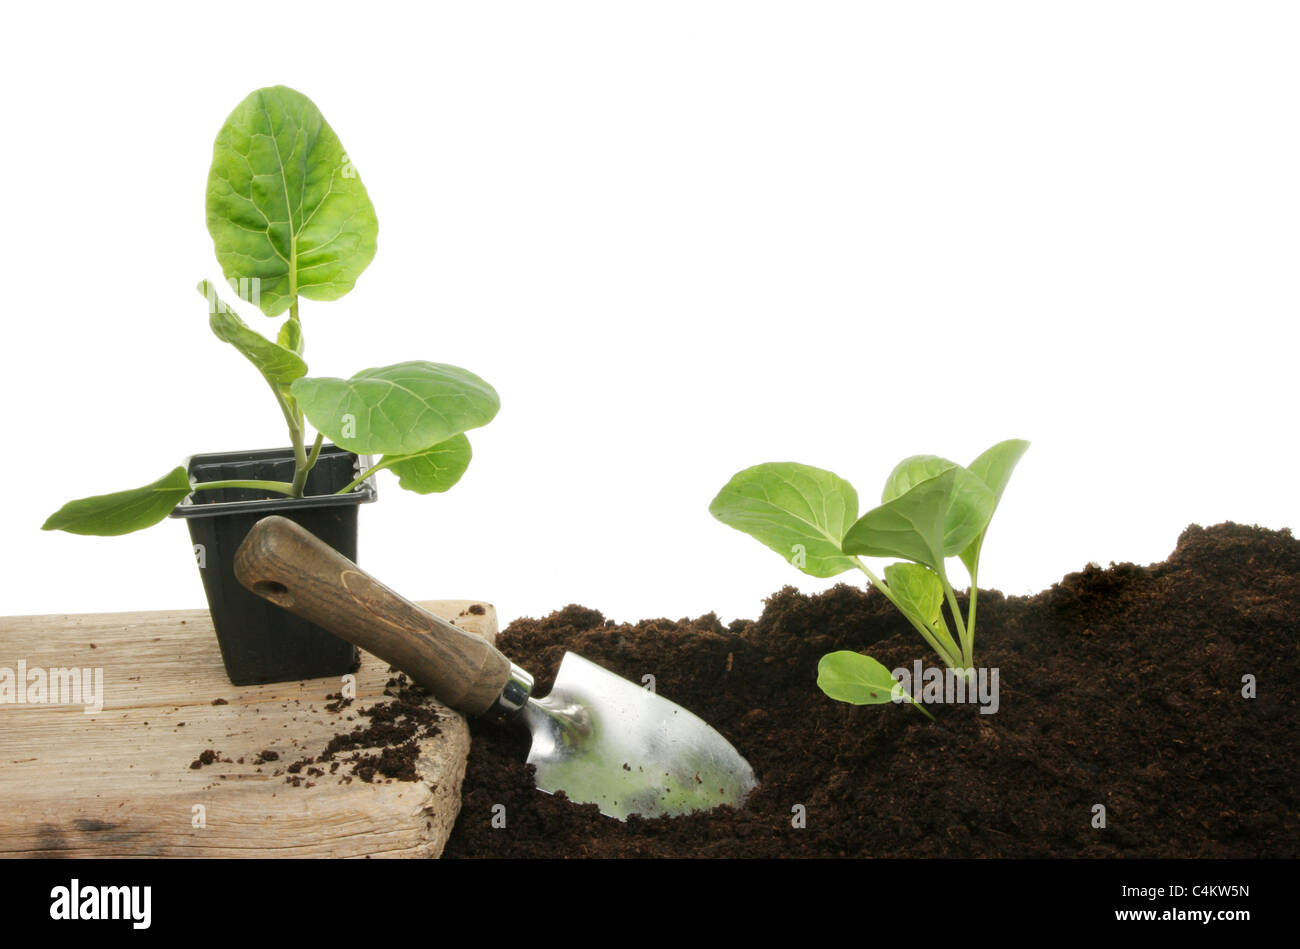 Planting seedling vegetable plants into fresh compost with a garden trowel - Stock Image